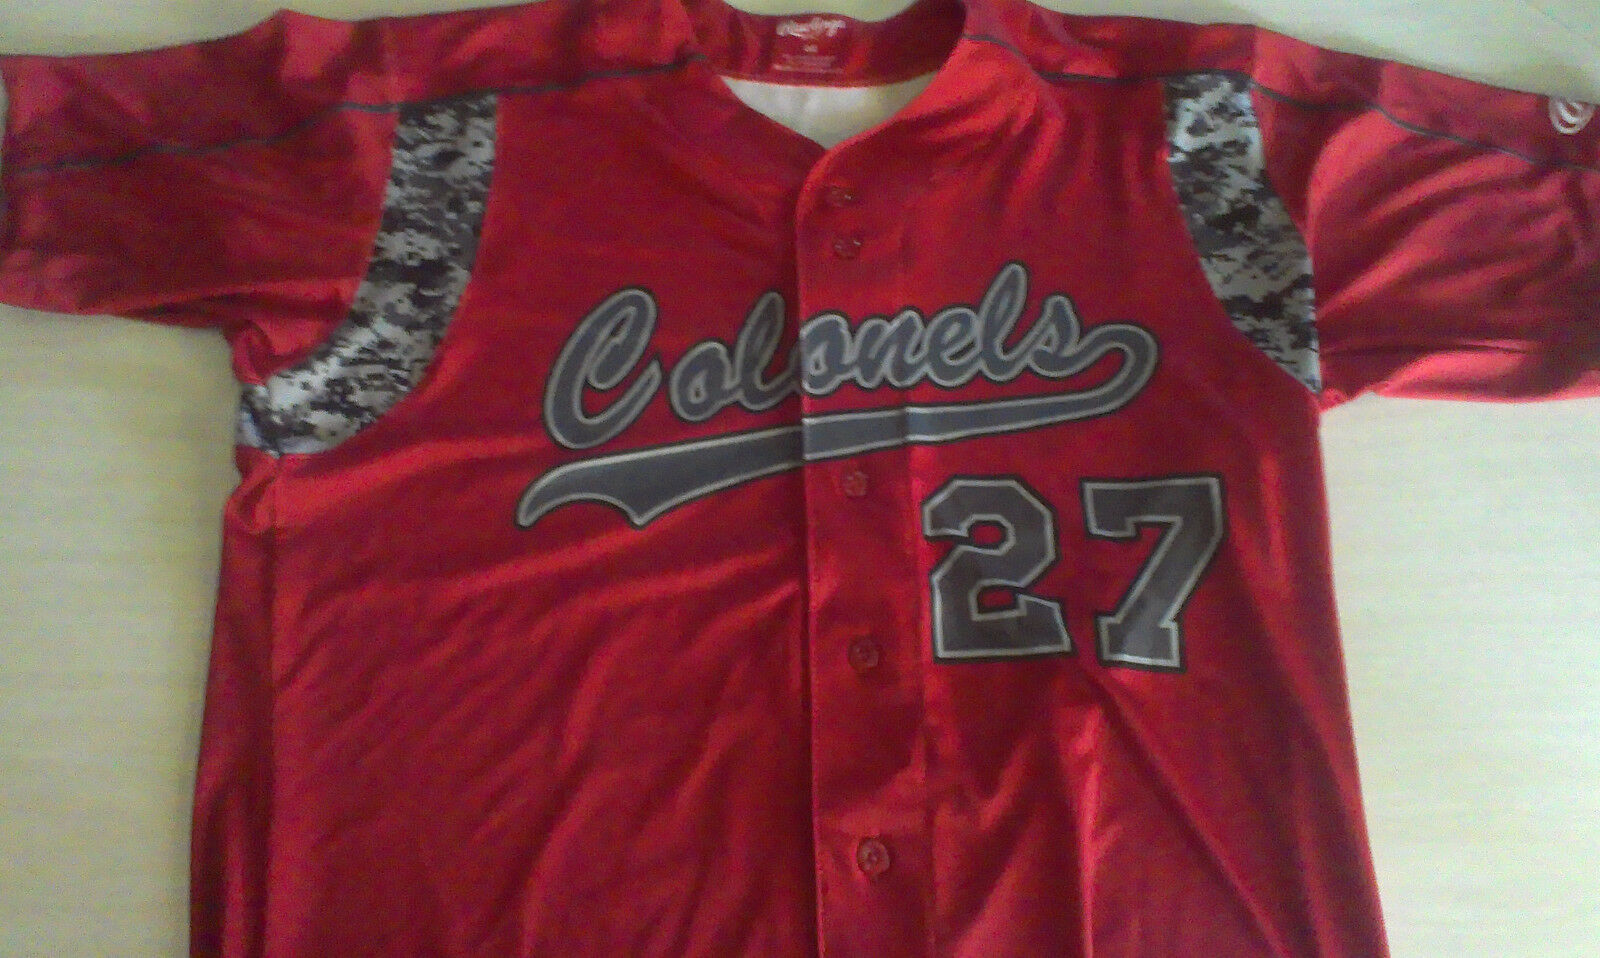 COLONELS RED PATRIOTS BASEBALL JERSEY MENS SIZE 44 LARGE  RAWLINGS